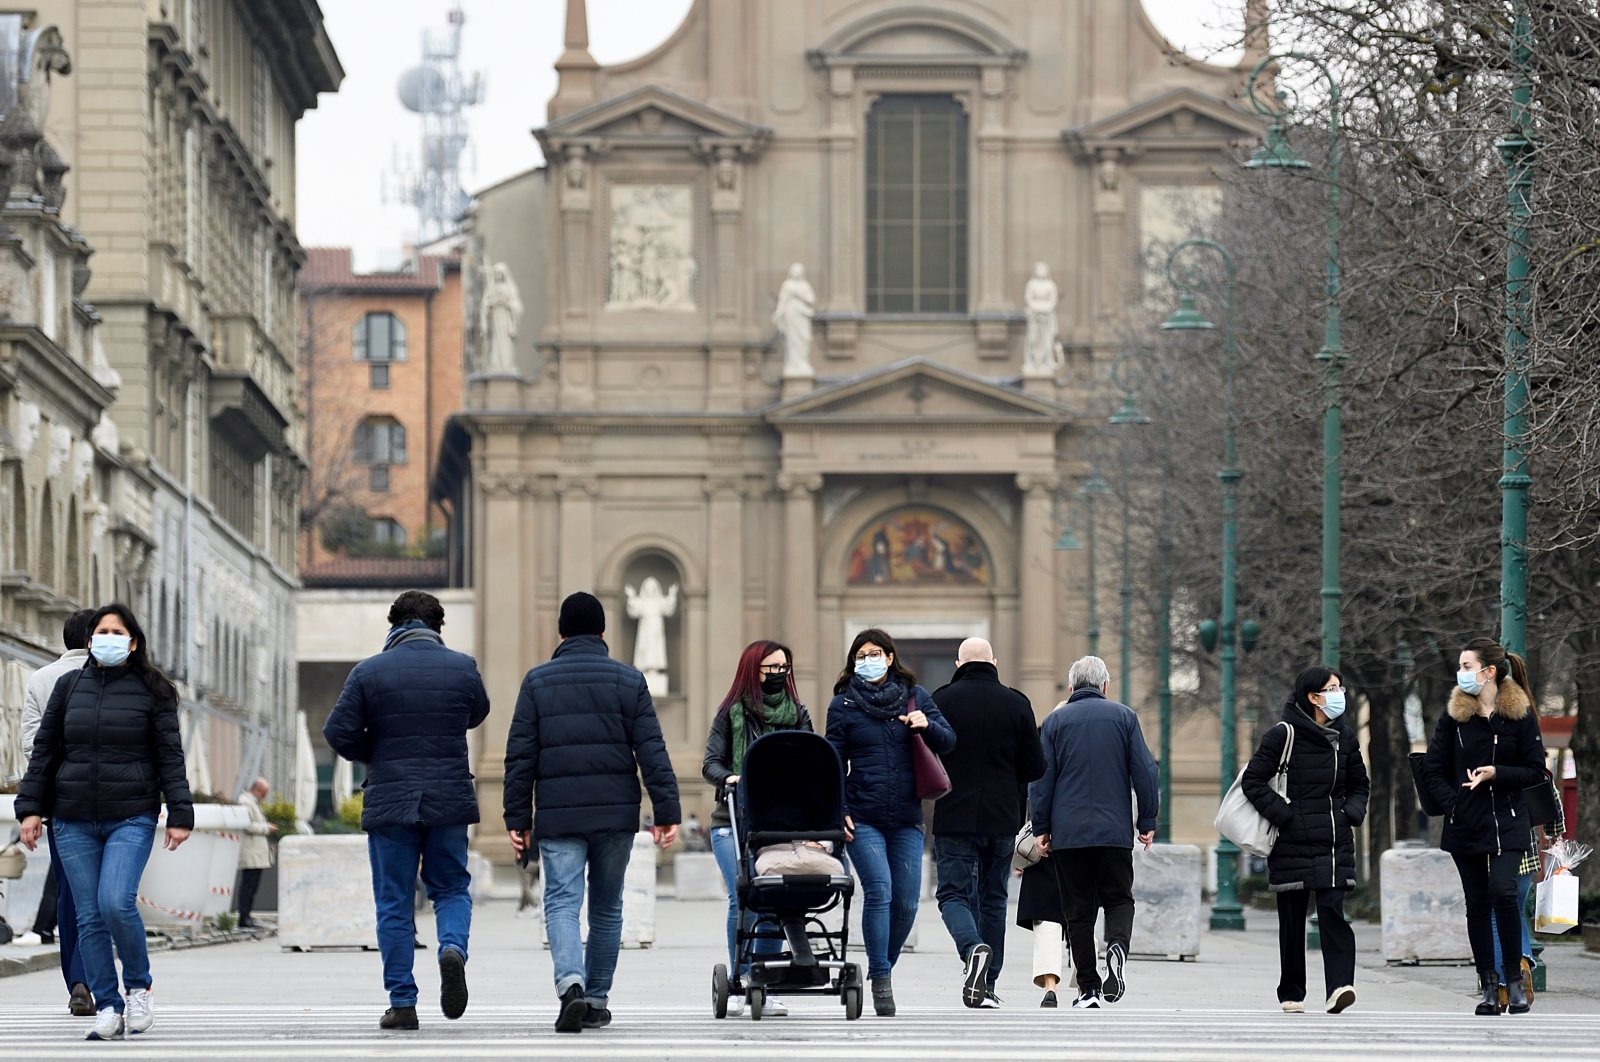 People walk on a street a year after the peak of Italy's coronavirus outbreak, in Bergamo, the country's epicenter, Italy, March 3, 2021. (Reuters Photo)